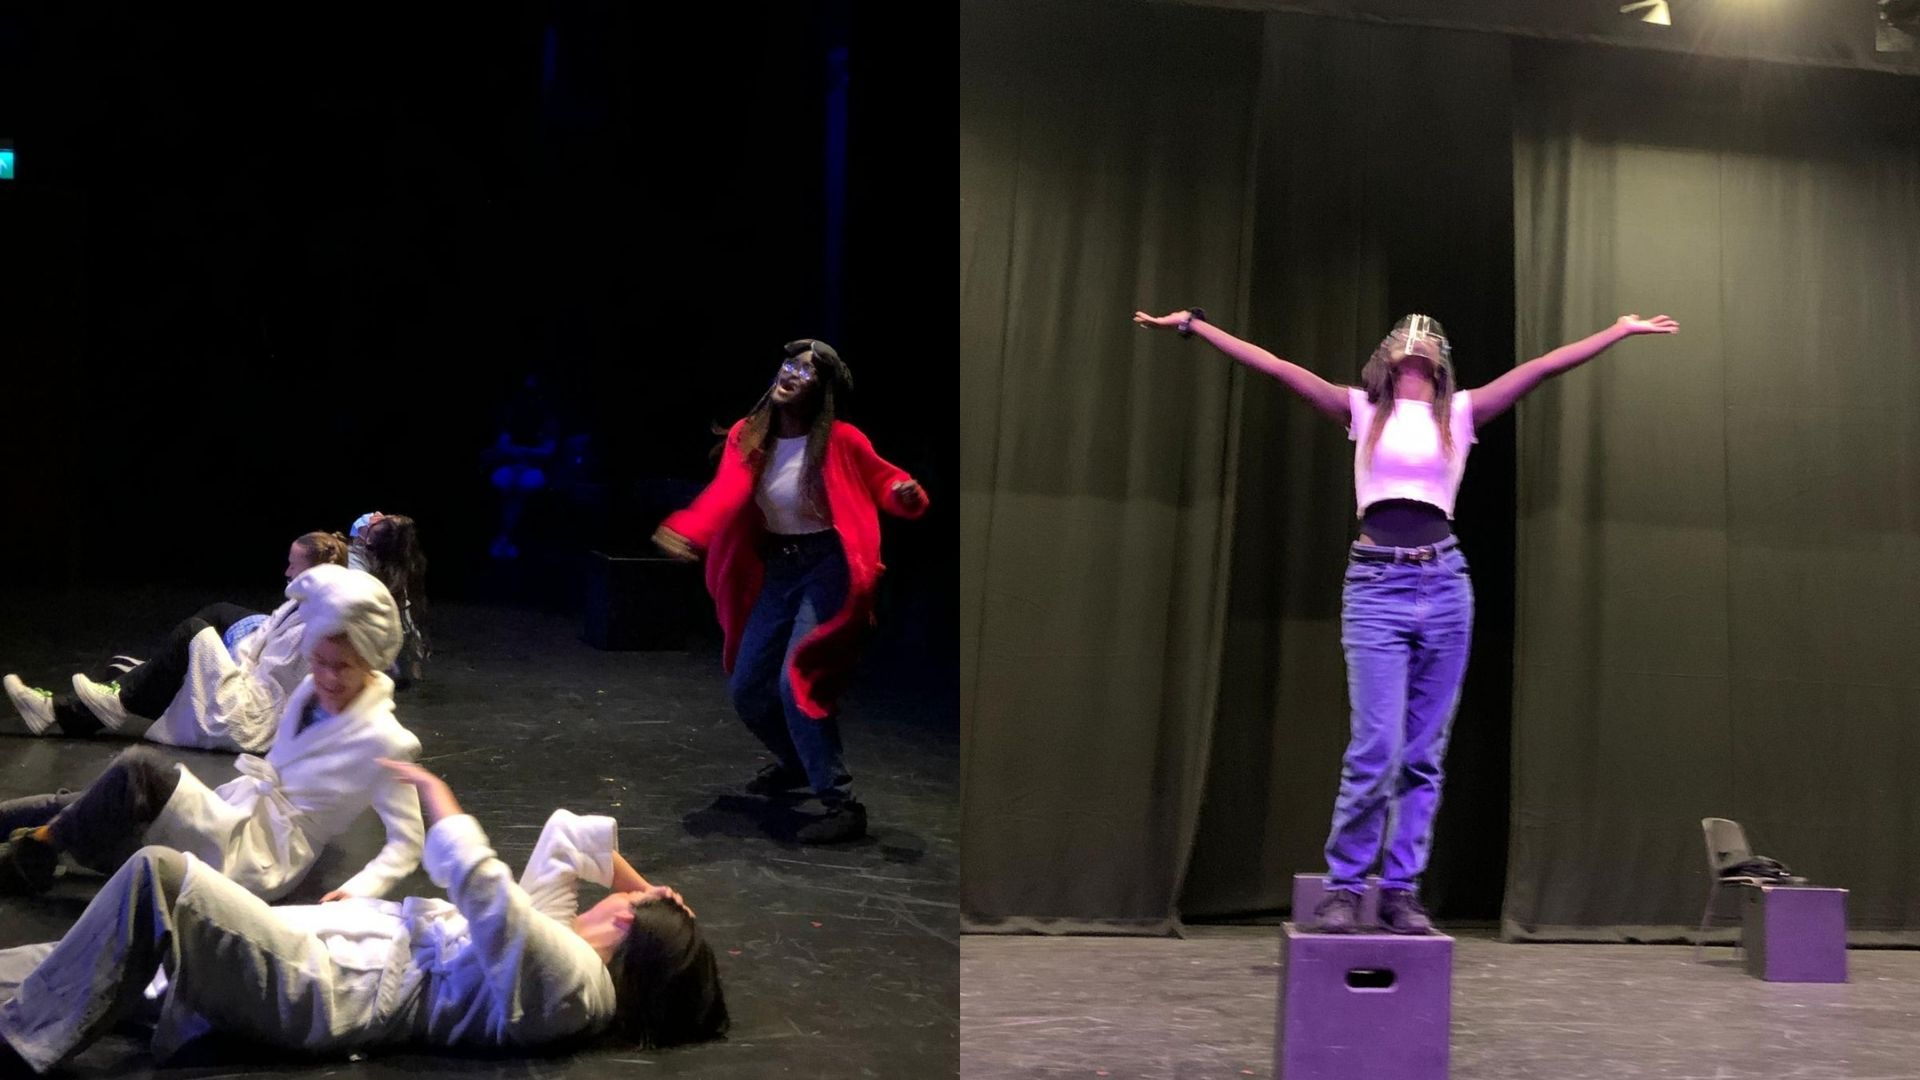 Left: Crystal wearing a red cardigan, jeans and a white t-shirt. She appears to be talking to the ceiling. On the ground are several actors lying down in white dressing gowns. Right: Crystal is wearing a dace shield, a white t-shirt and jeans. She is standing on top of a box and looking up with her arms stretched out to either side. Behind are some heavy black drapes.